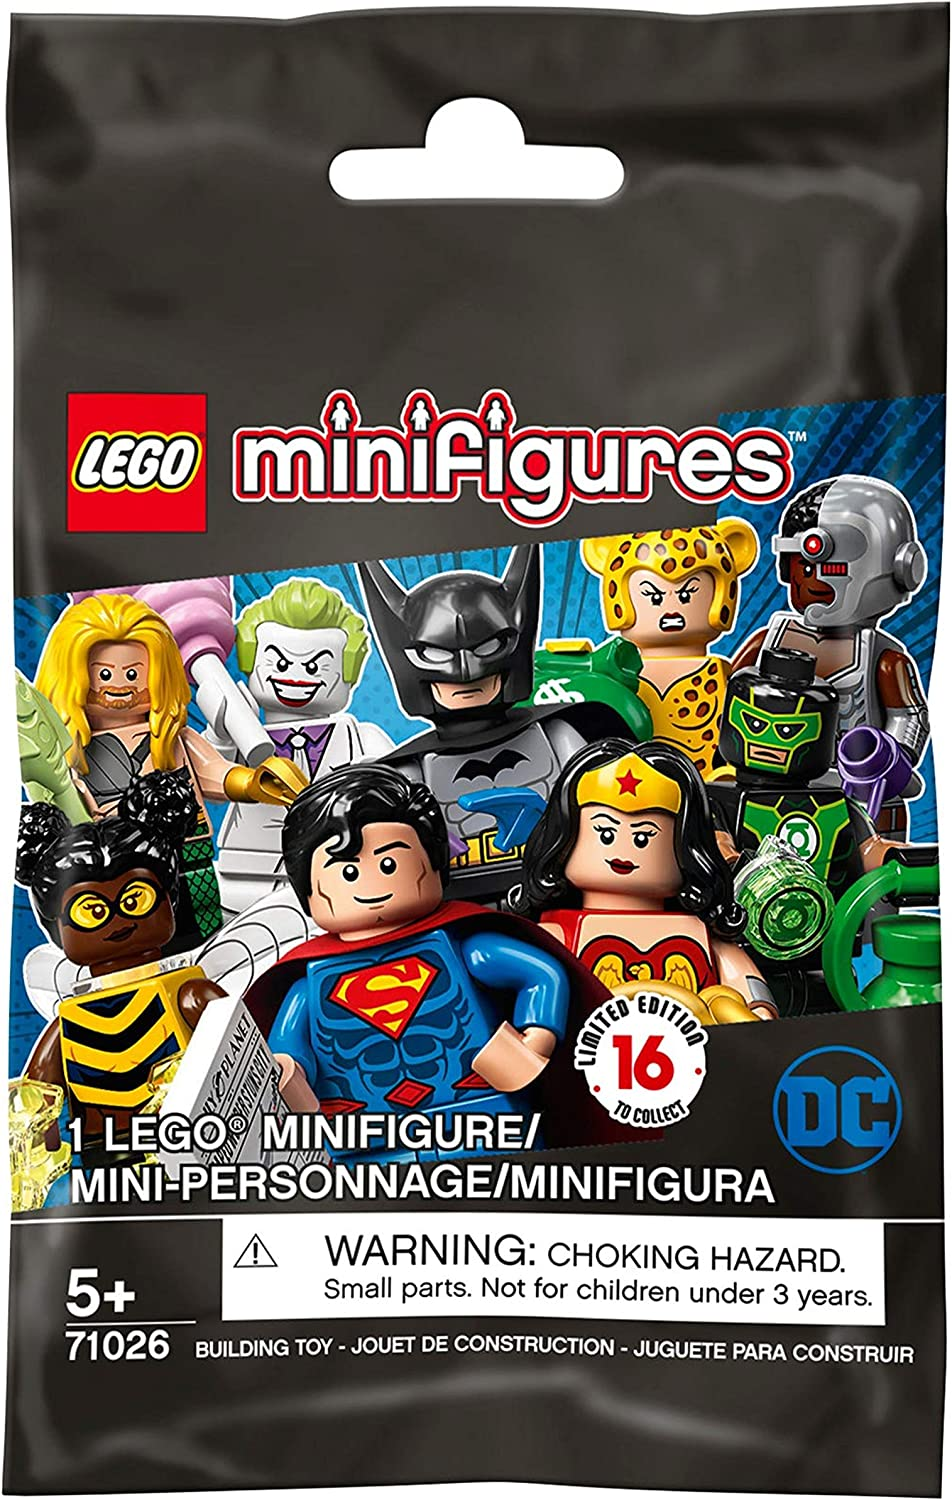 LEGO Minifigures - DC Super Heroes Series - New Sealed Blind Bags - Random Set of 6 (71026)